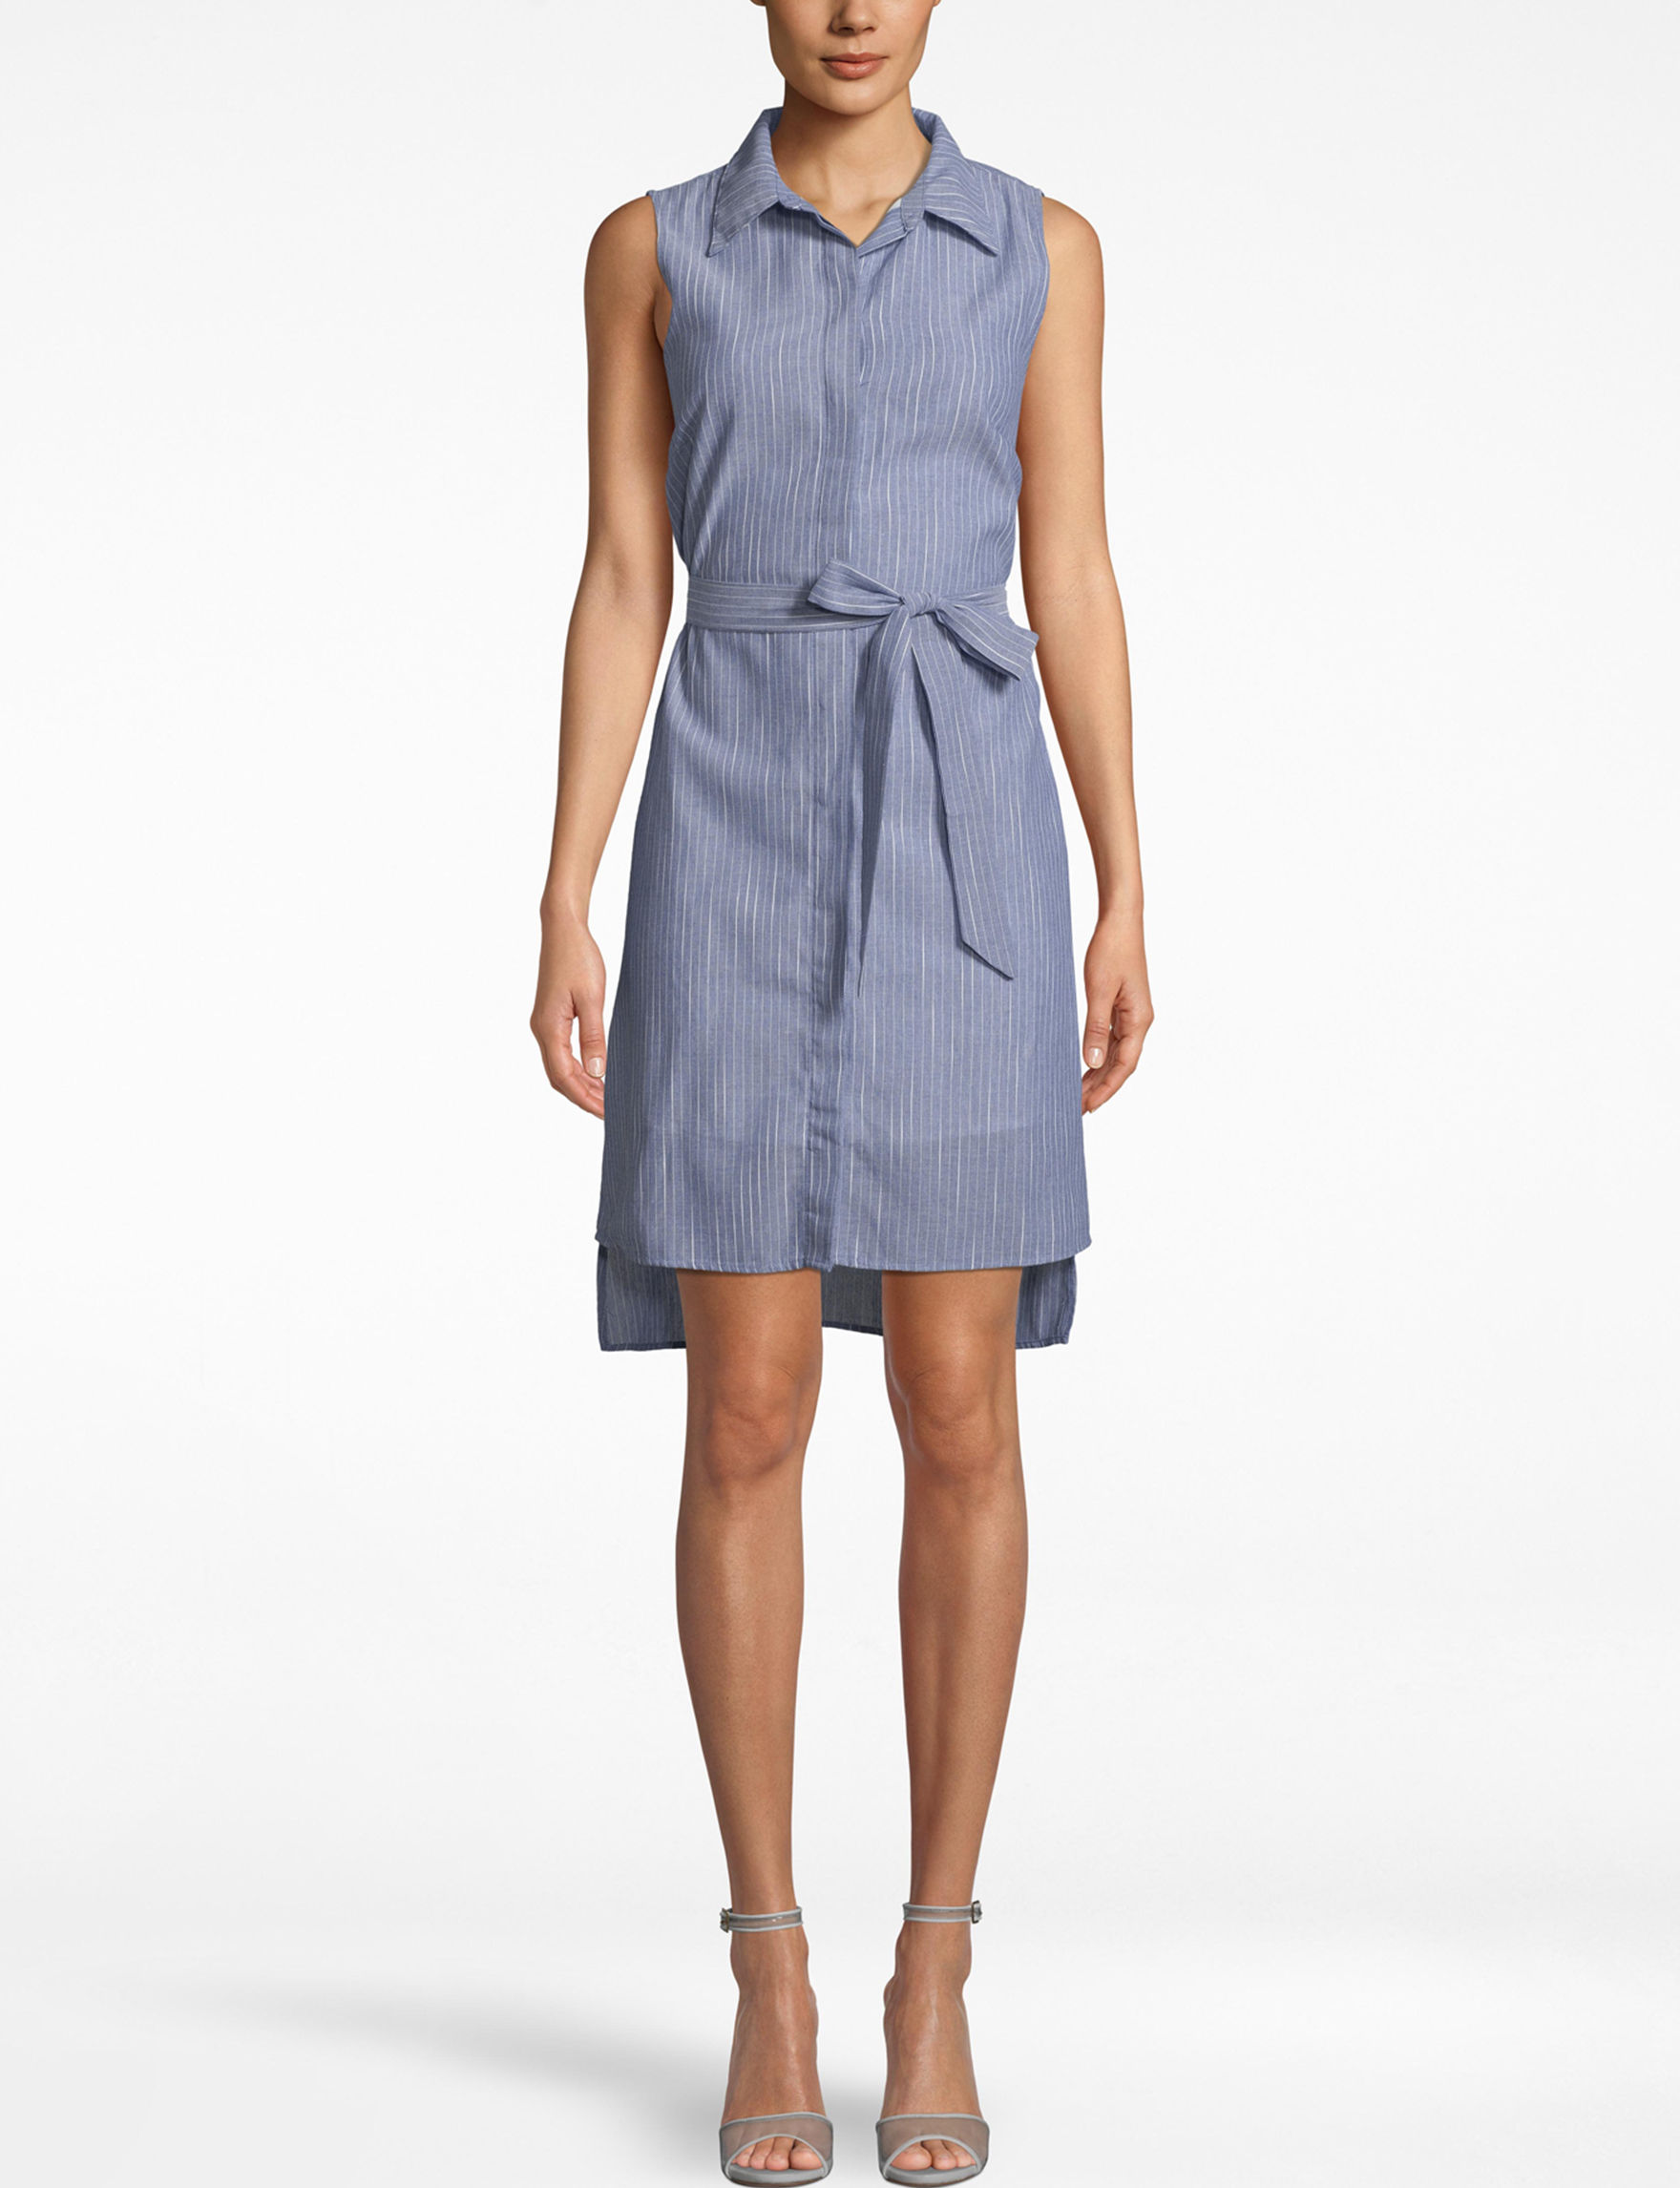 Nicole Miller Blue / White Everyday & Casual Shirt Dresses